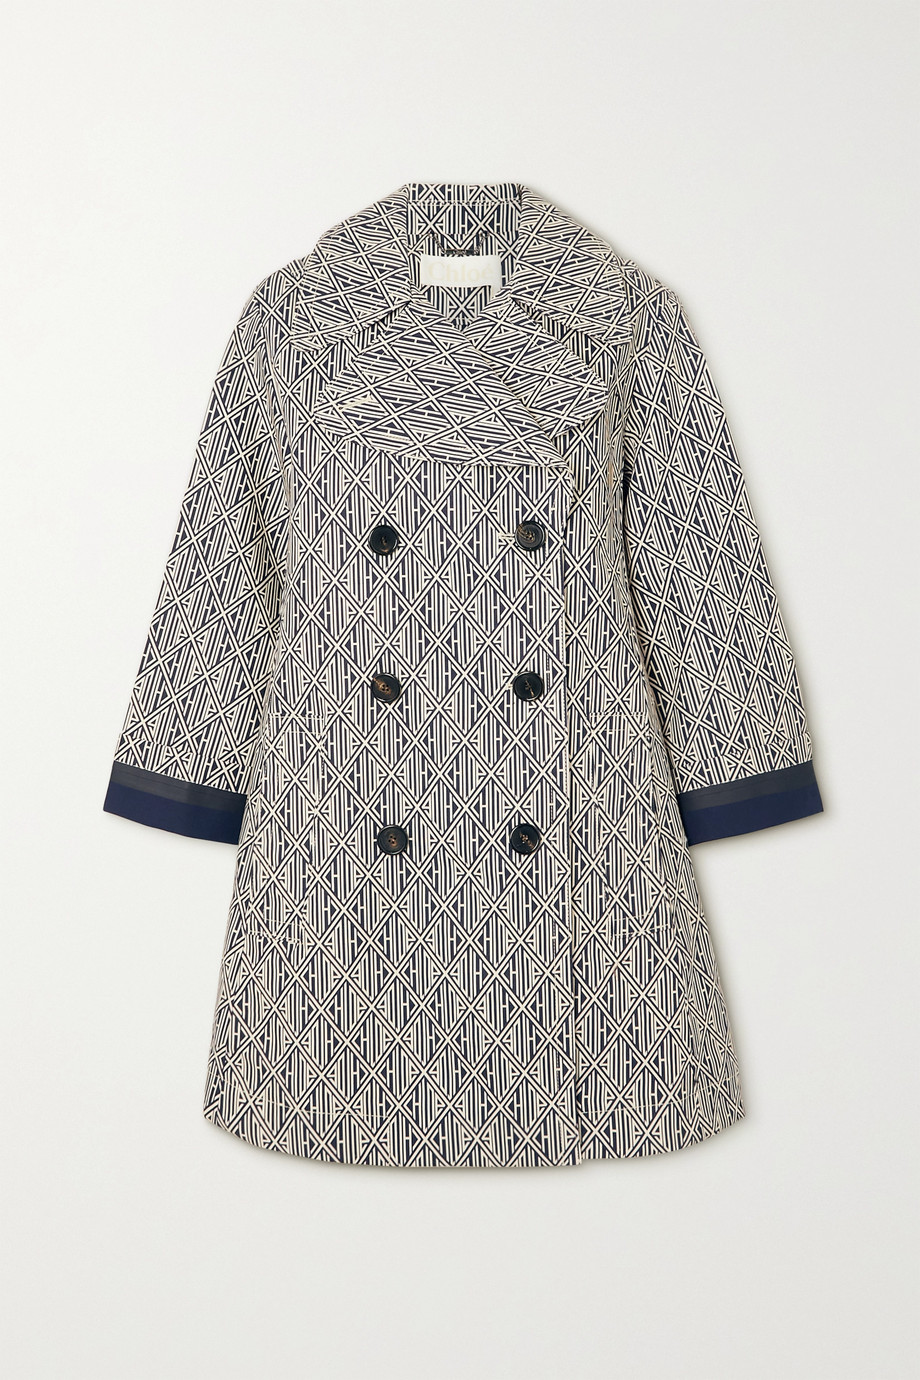 CHLOÉ Double-breasted printed cotton-gabardine coat